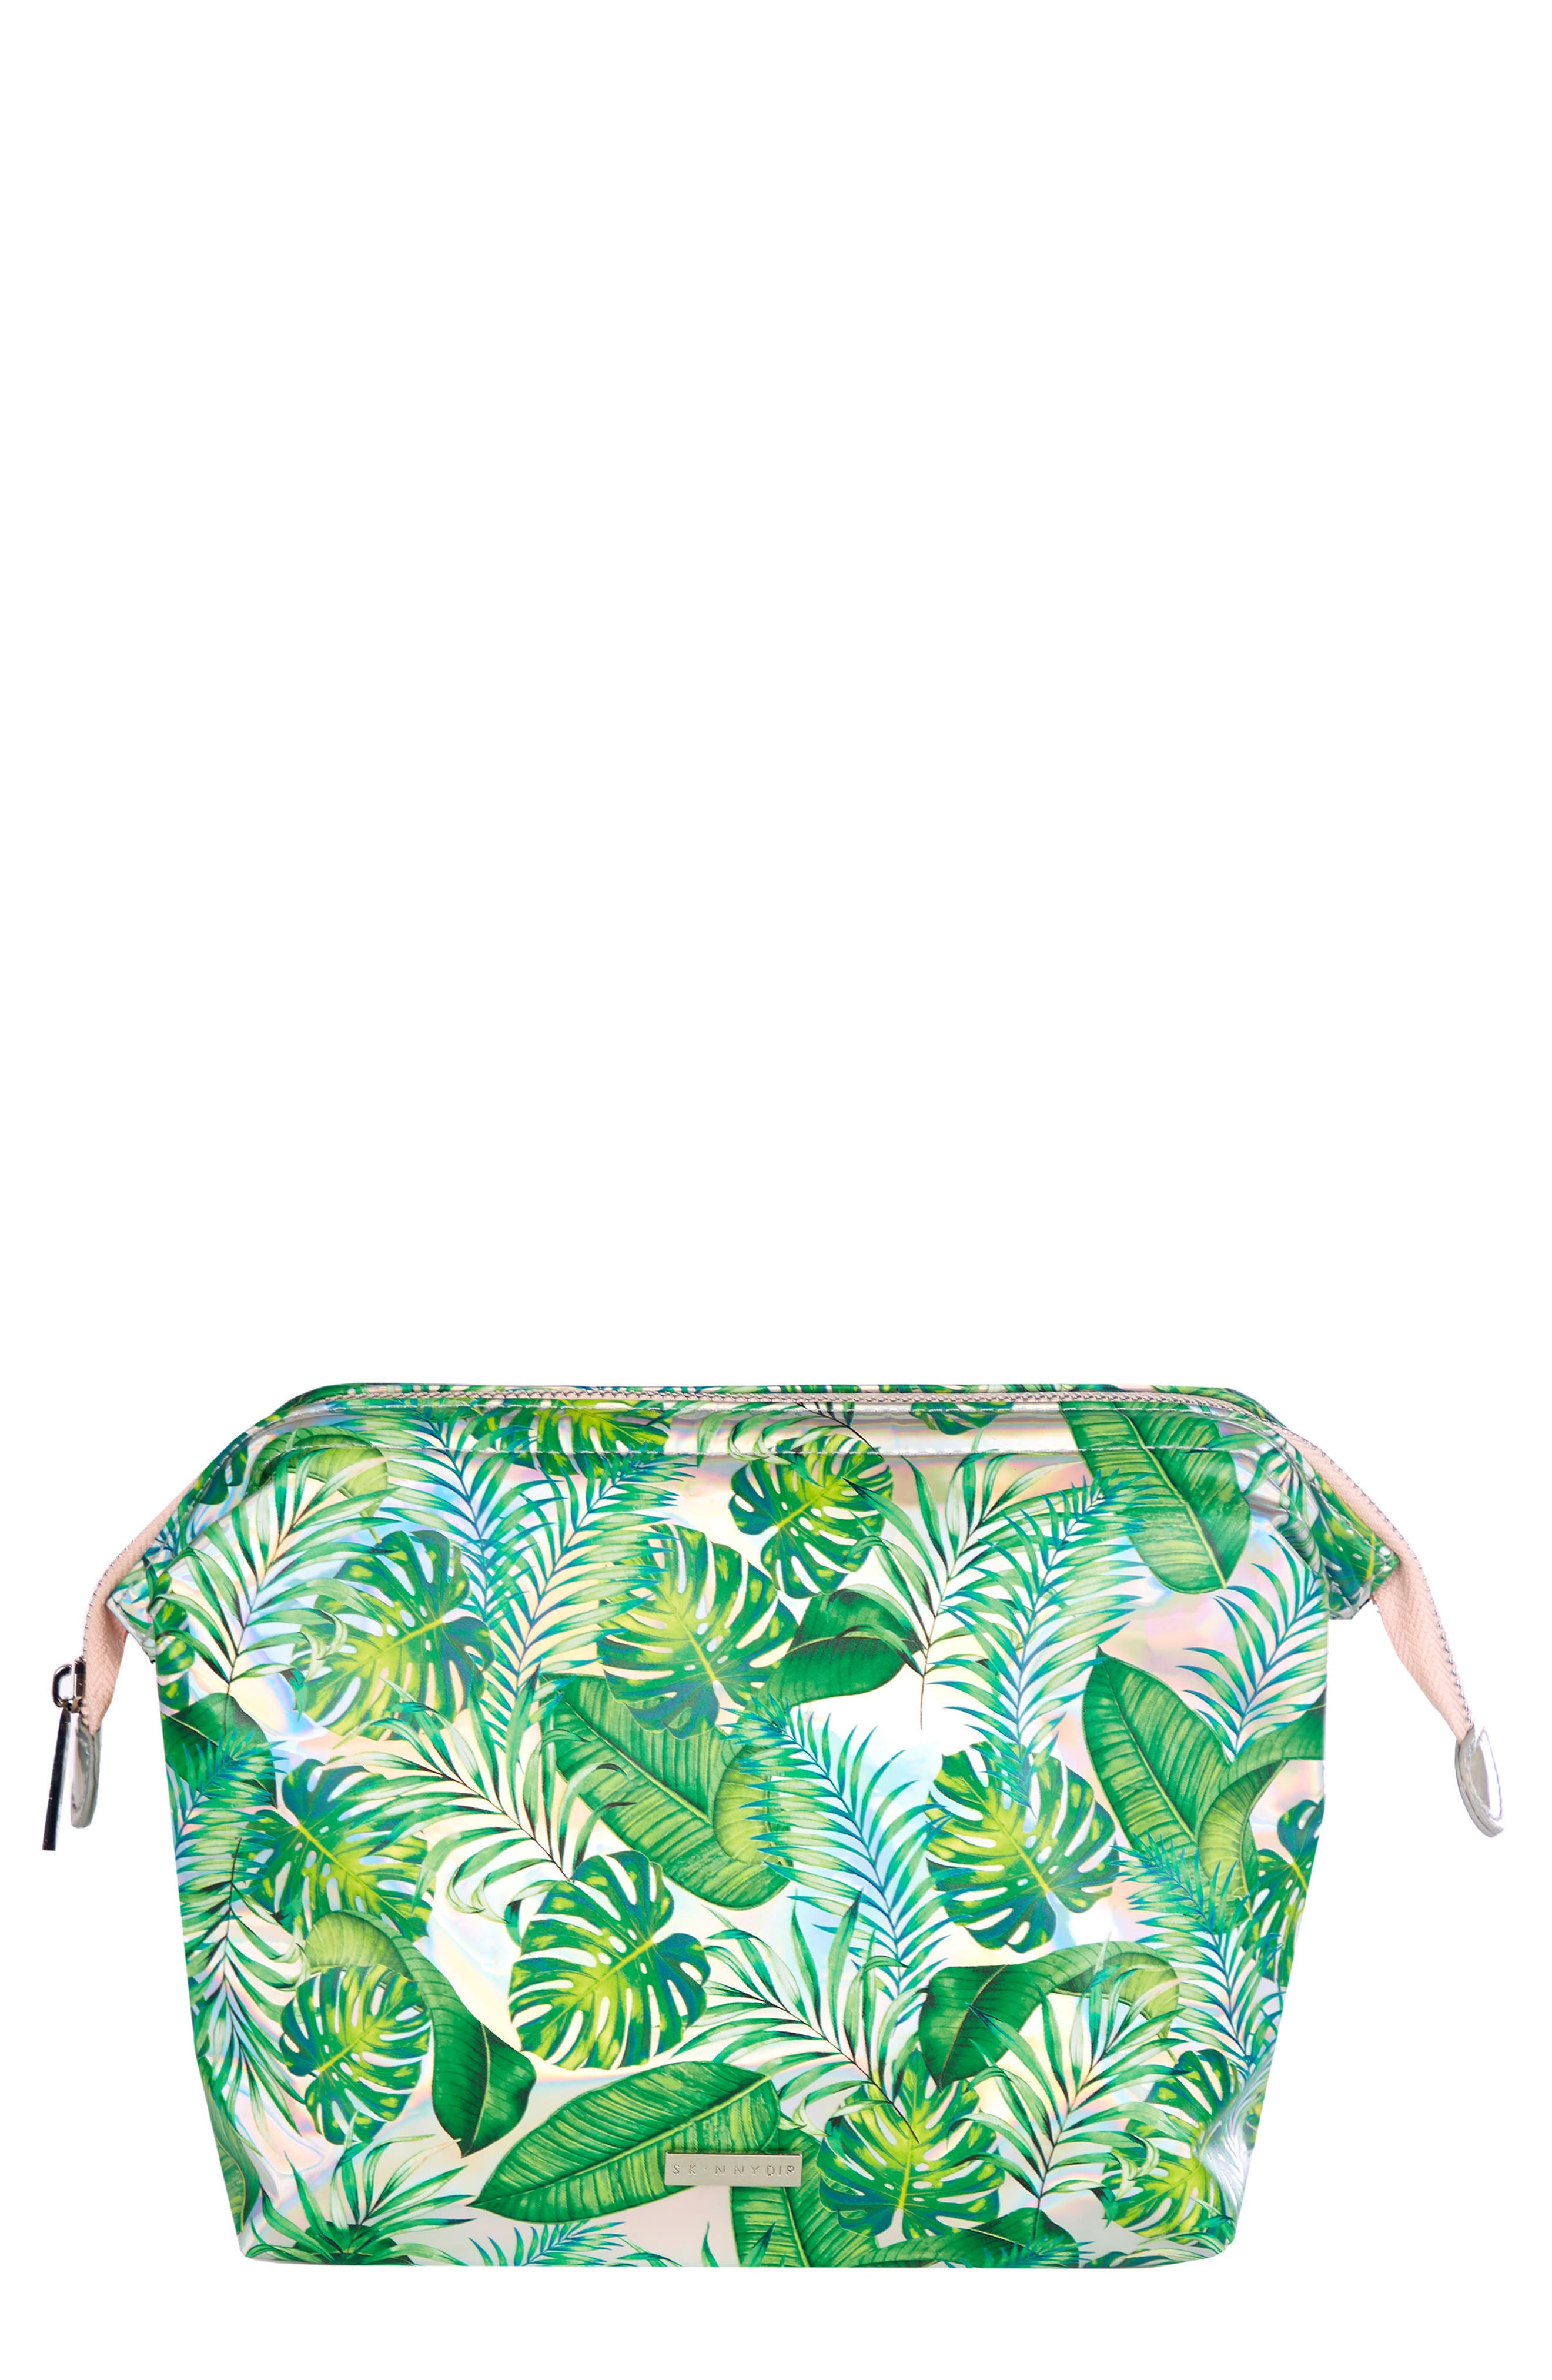 Skinny Dip Dominica Large Cosmetics Case,                         Main,                         color, No Color